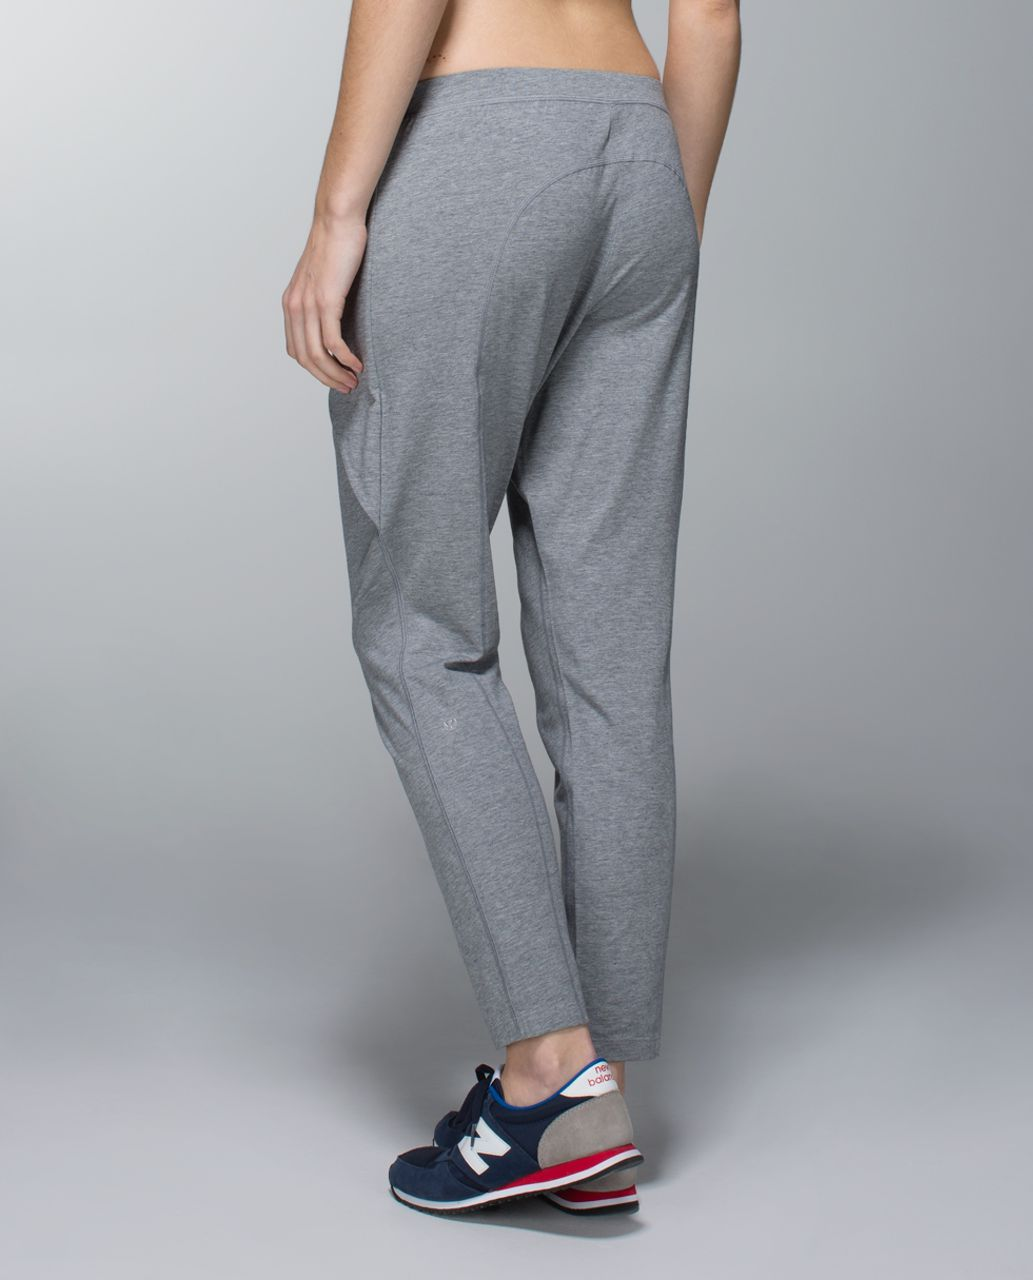 46adfdc2f9f8eb Lululemon Tie One On Pant - Heathered Medium Grey - lulu fanatics